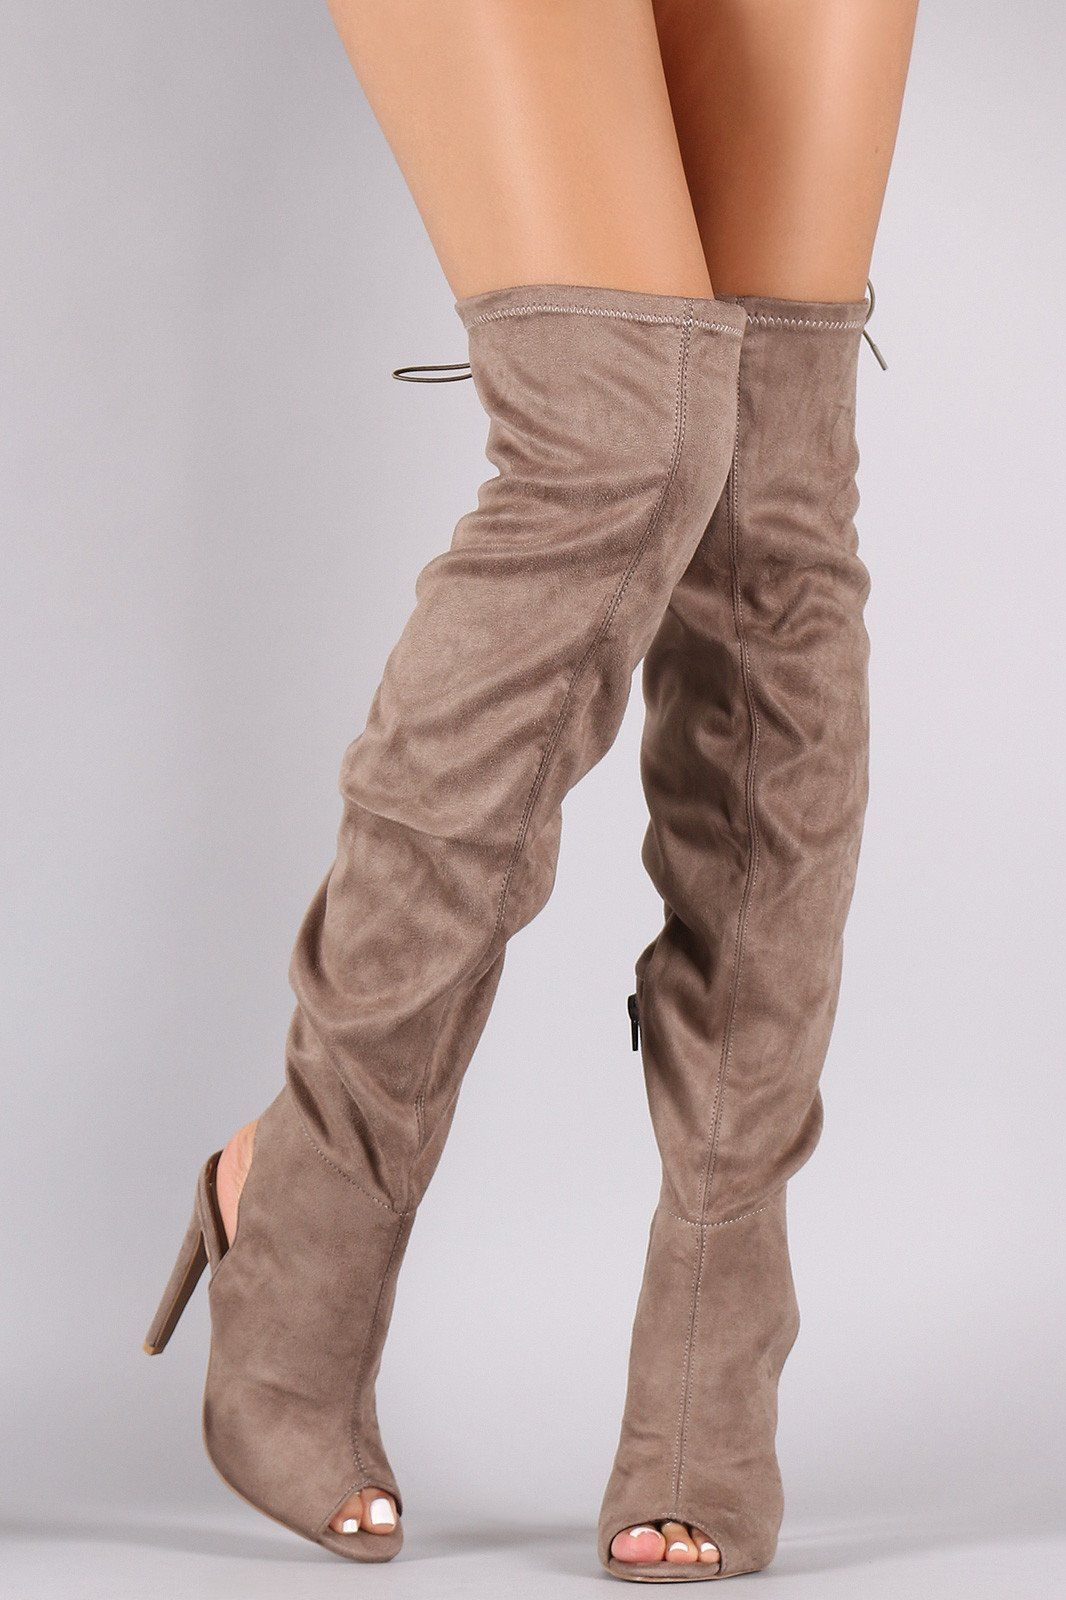 e45c766c531a Qupid Tan Suede Peep Toe Over the Knee OTK Boots | sexy boots ...